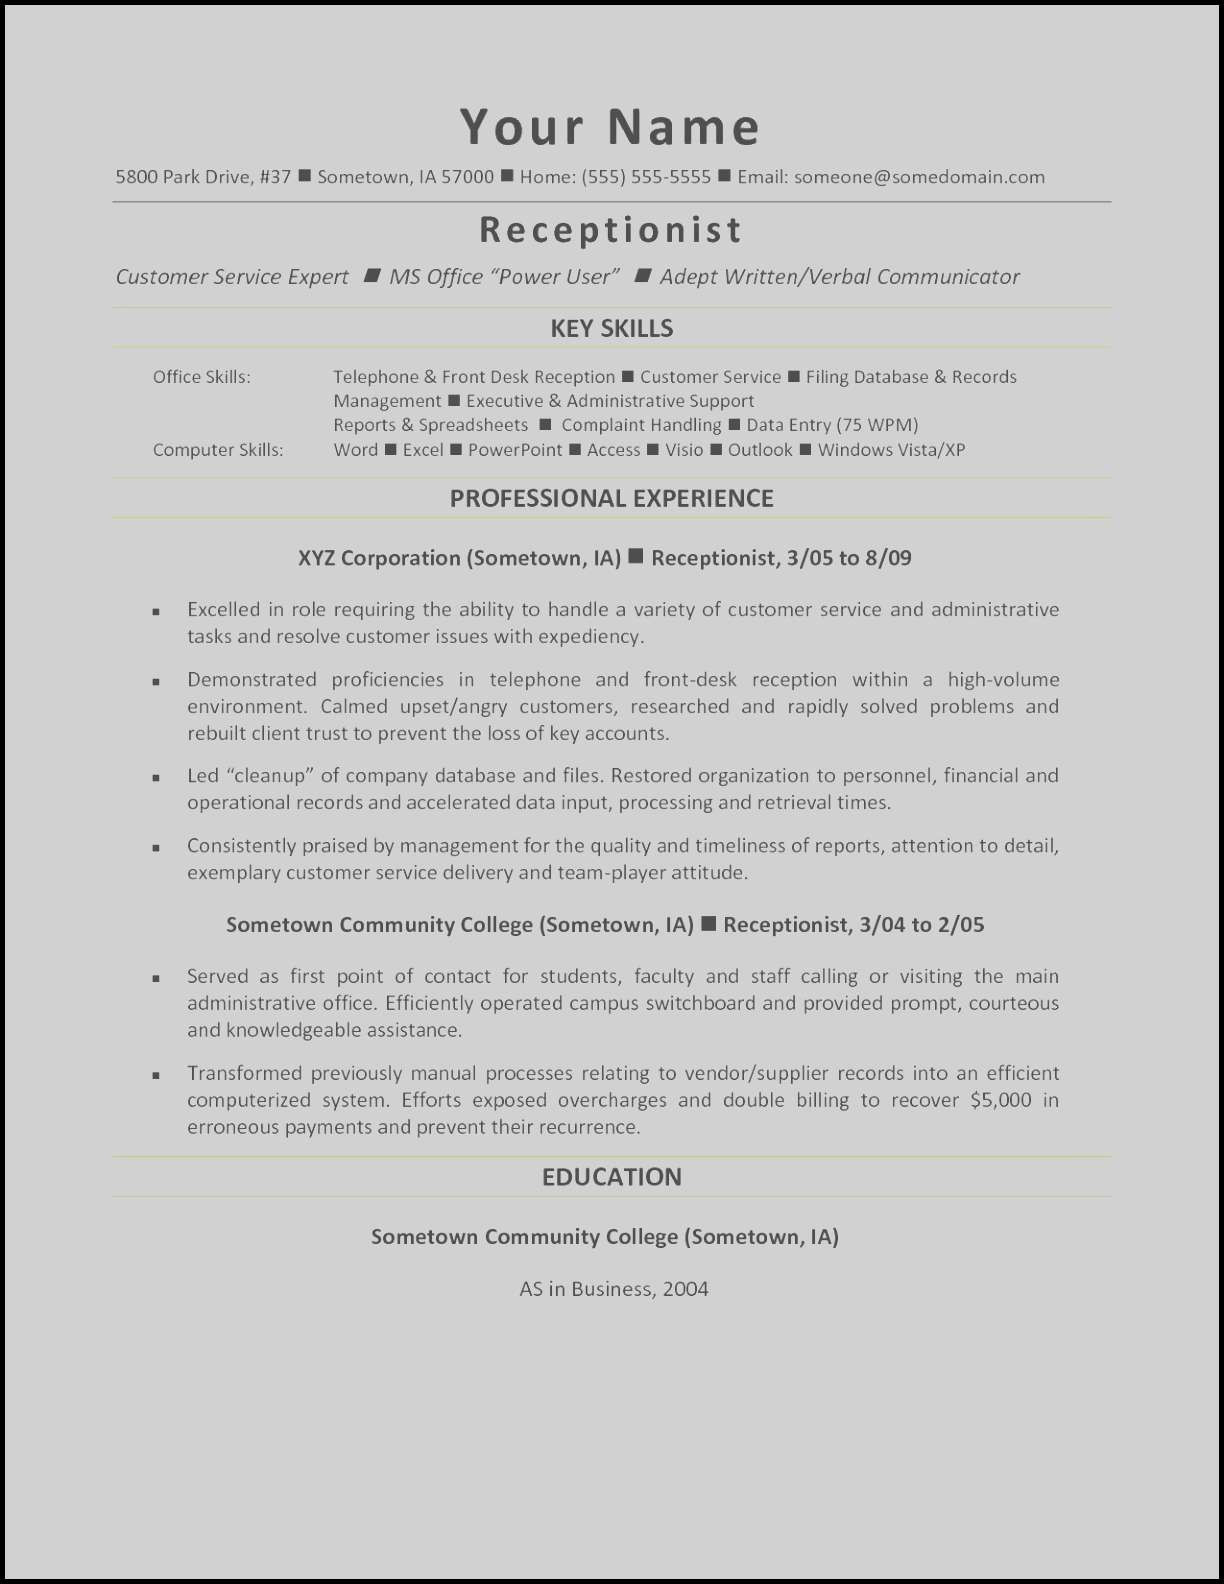 Video Editor Resume Template - Search for Resumes Inspirational Video Editor Resume Template